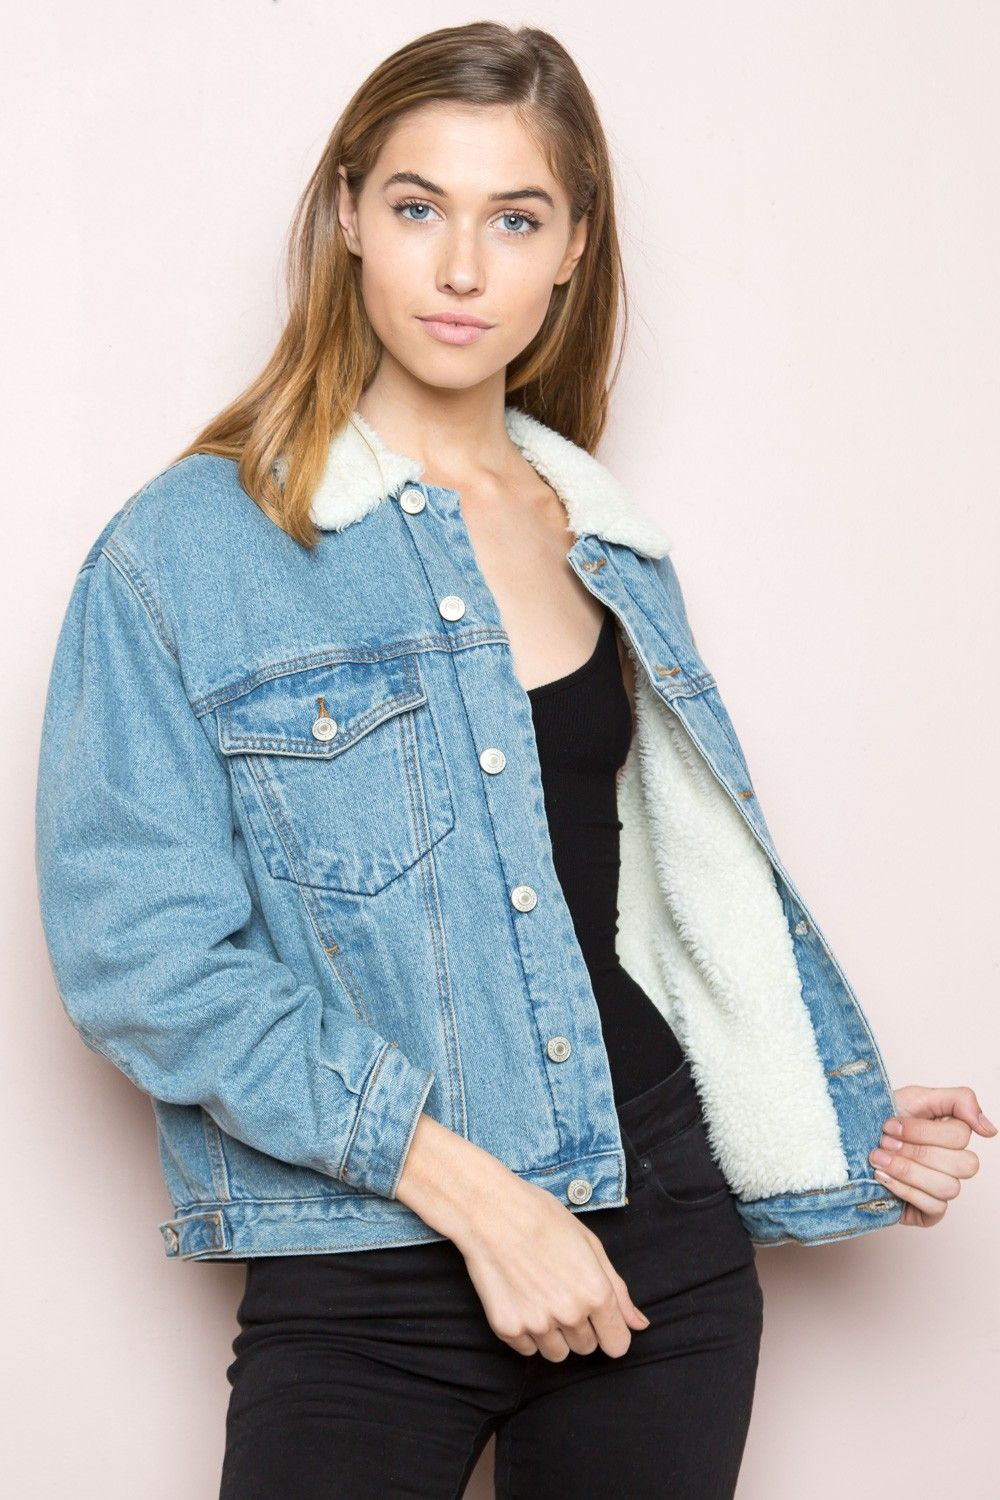 Brandy U2665 Melville | Shaine Denim Jacket - Clothing | New Arrivals | Pinterest | Denim Jackets ...